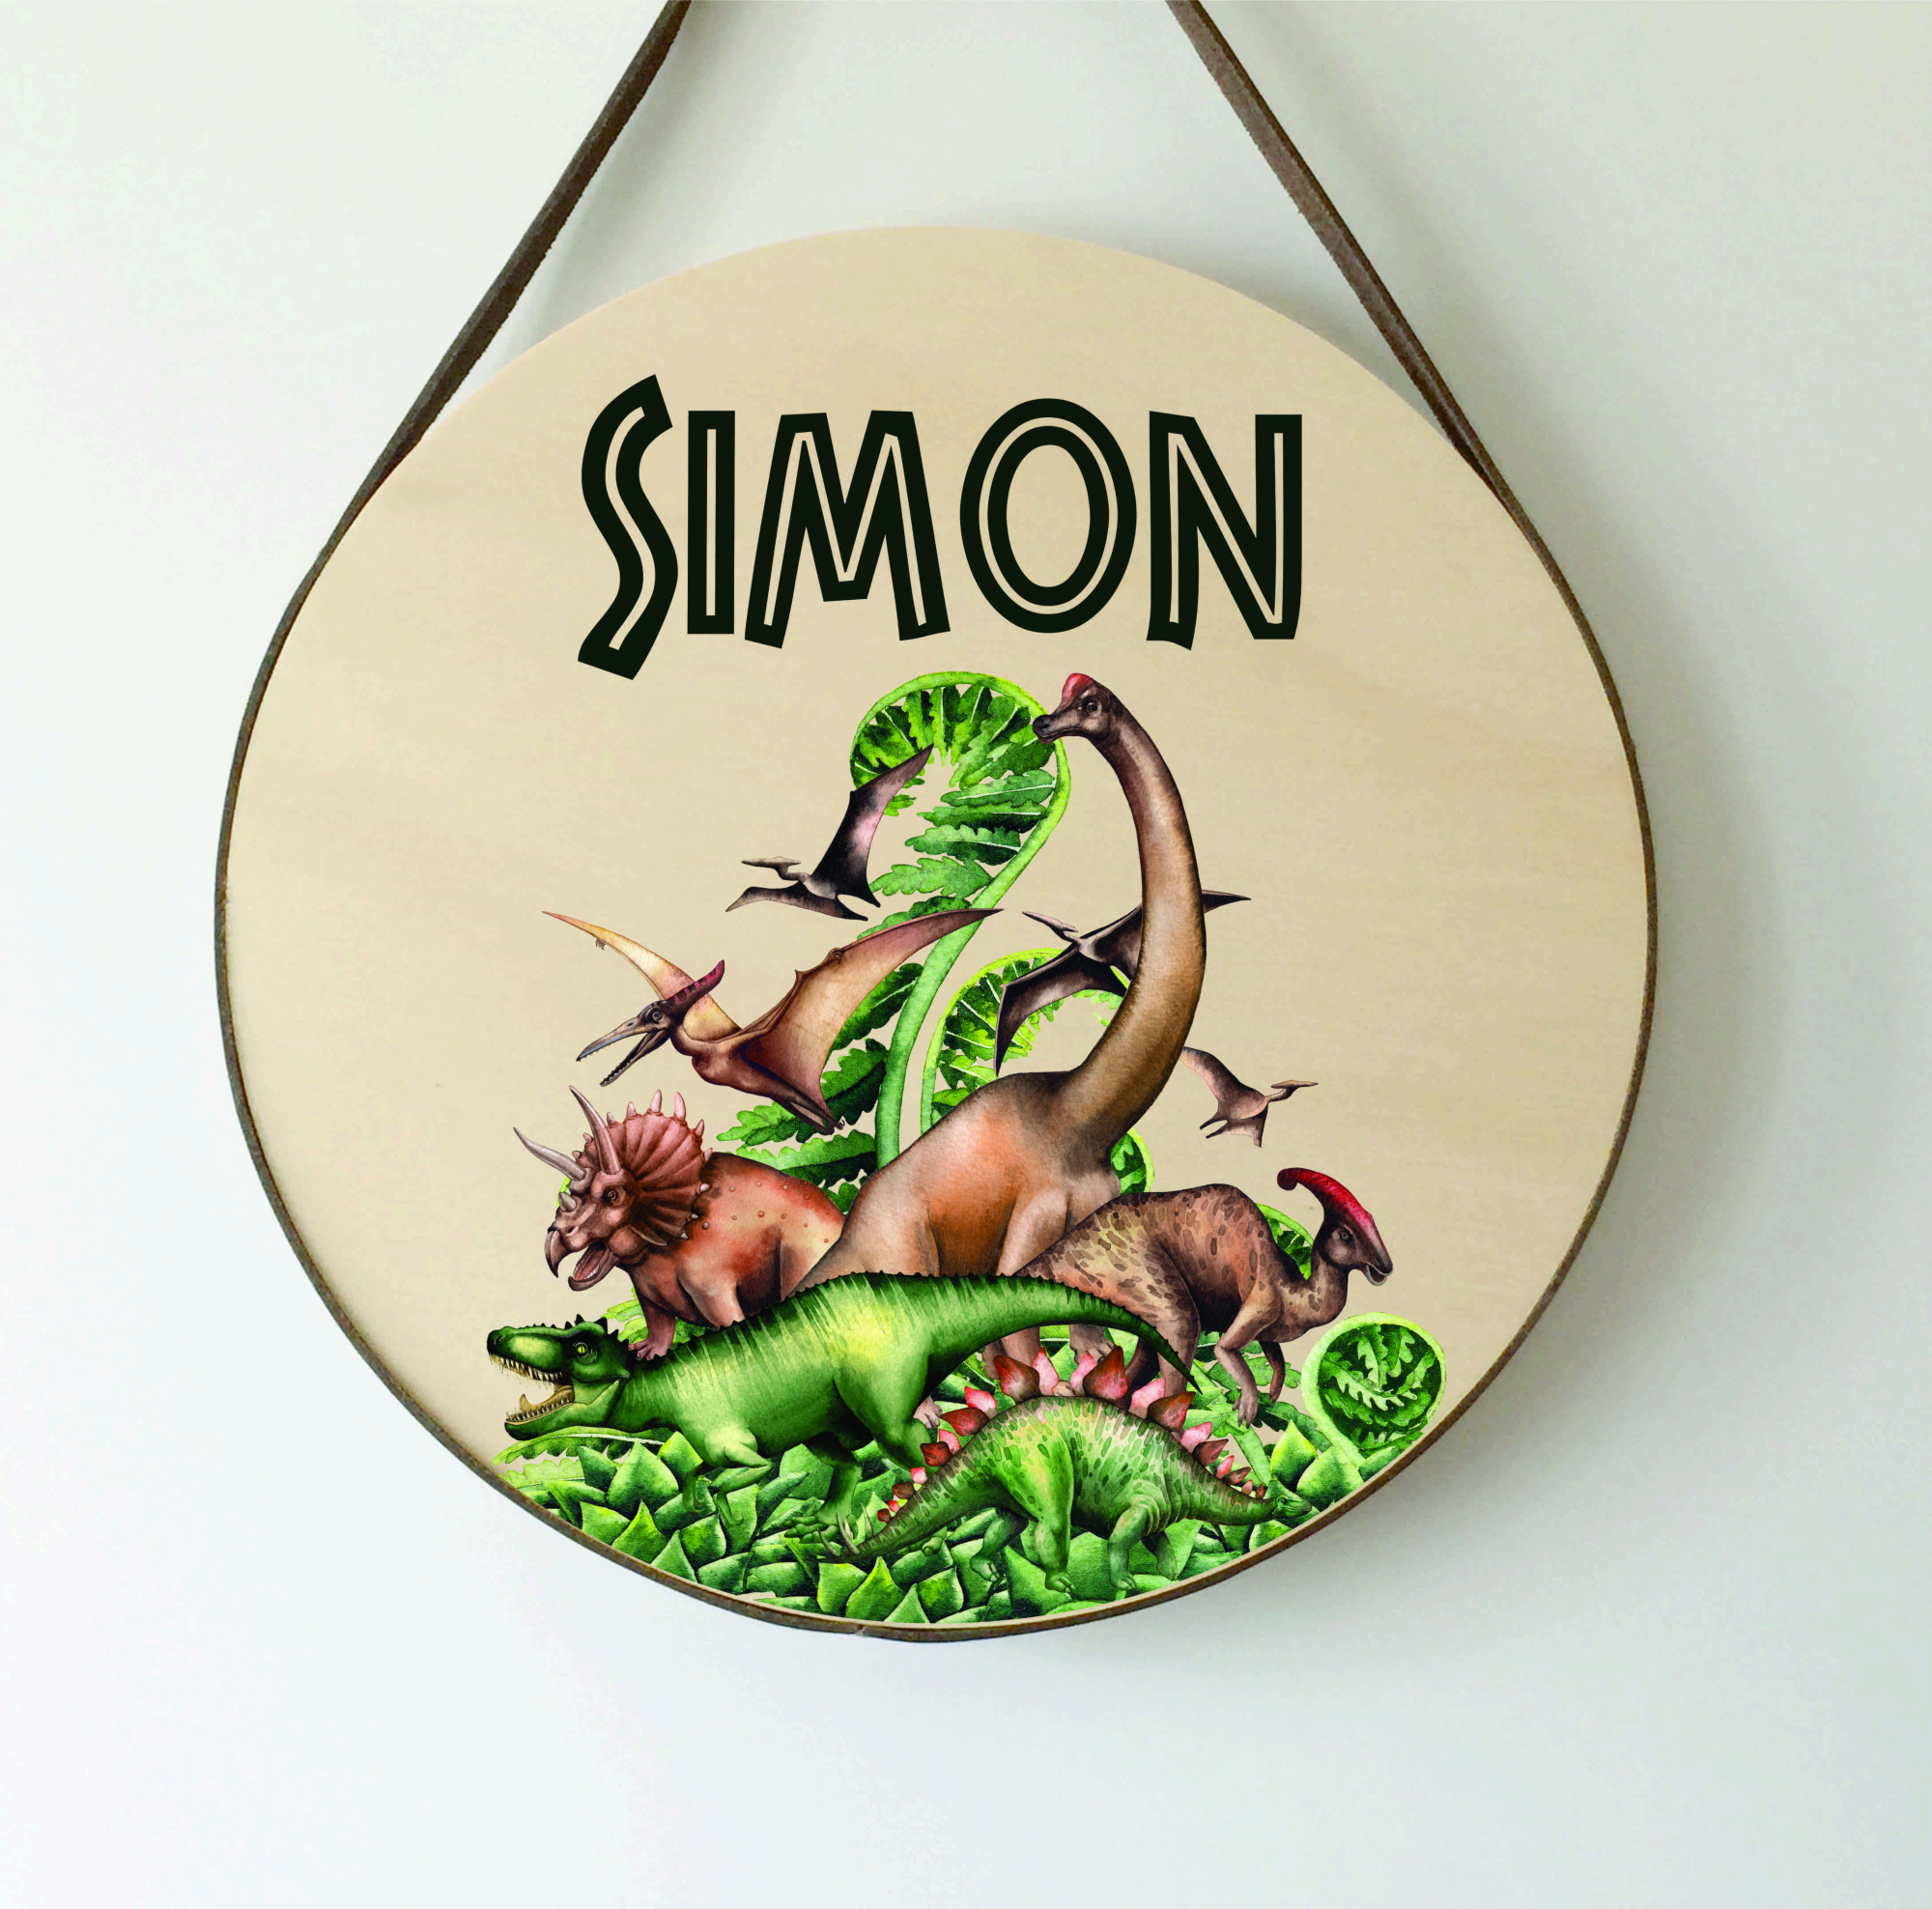 Name-plaques-Kids-name-plaque-Wooden-name-plaques-Childrens-name-sign-round-wooden-name-plaque